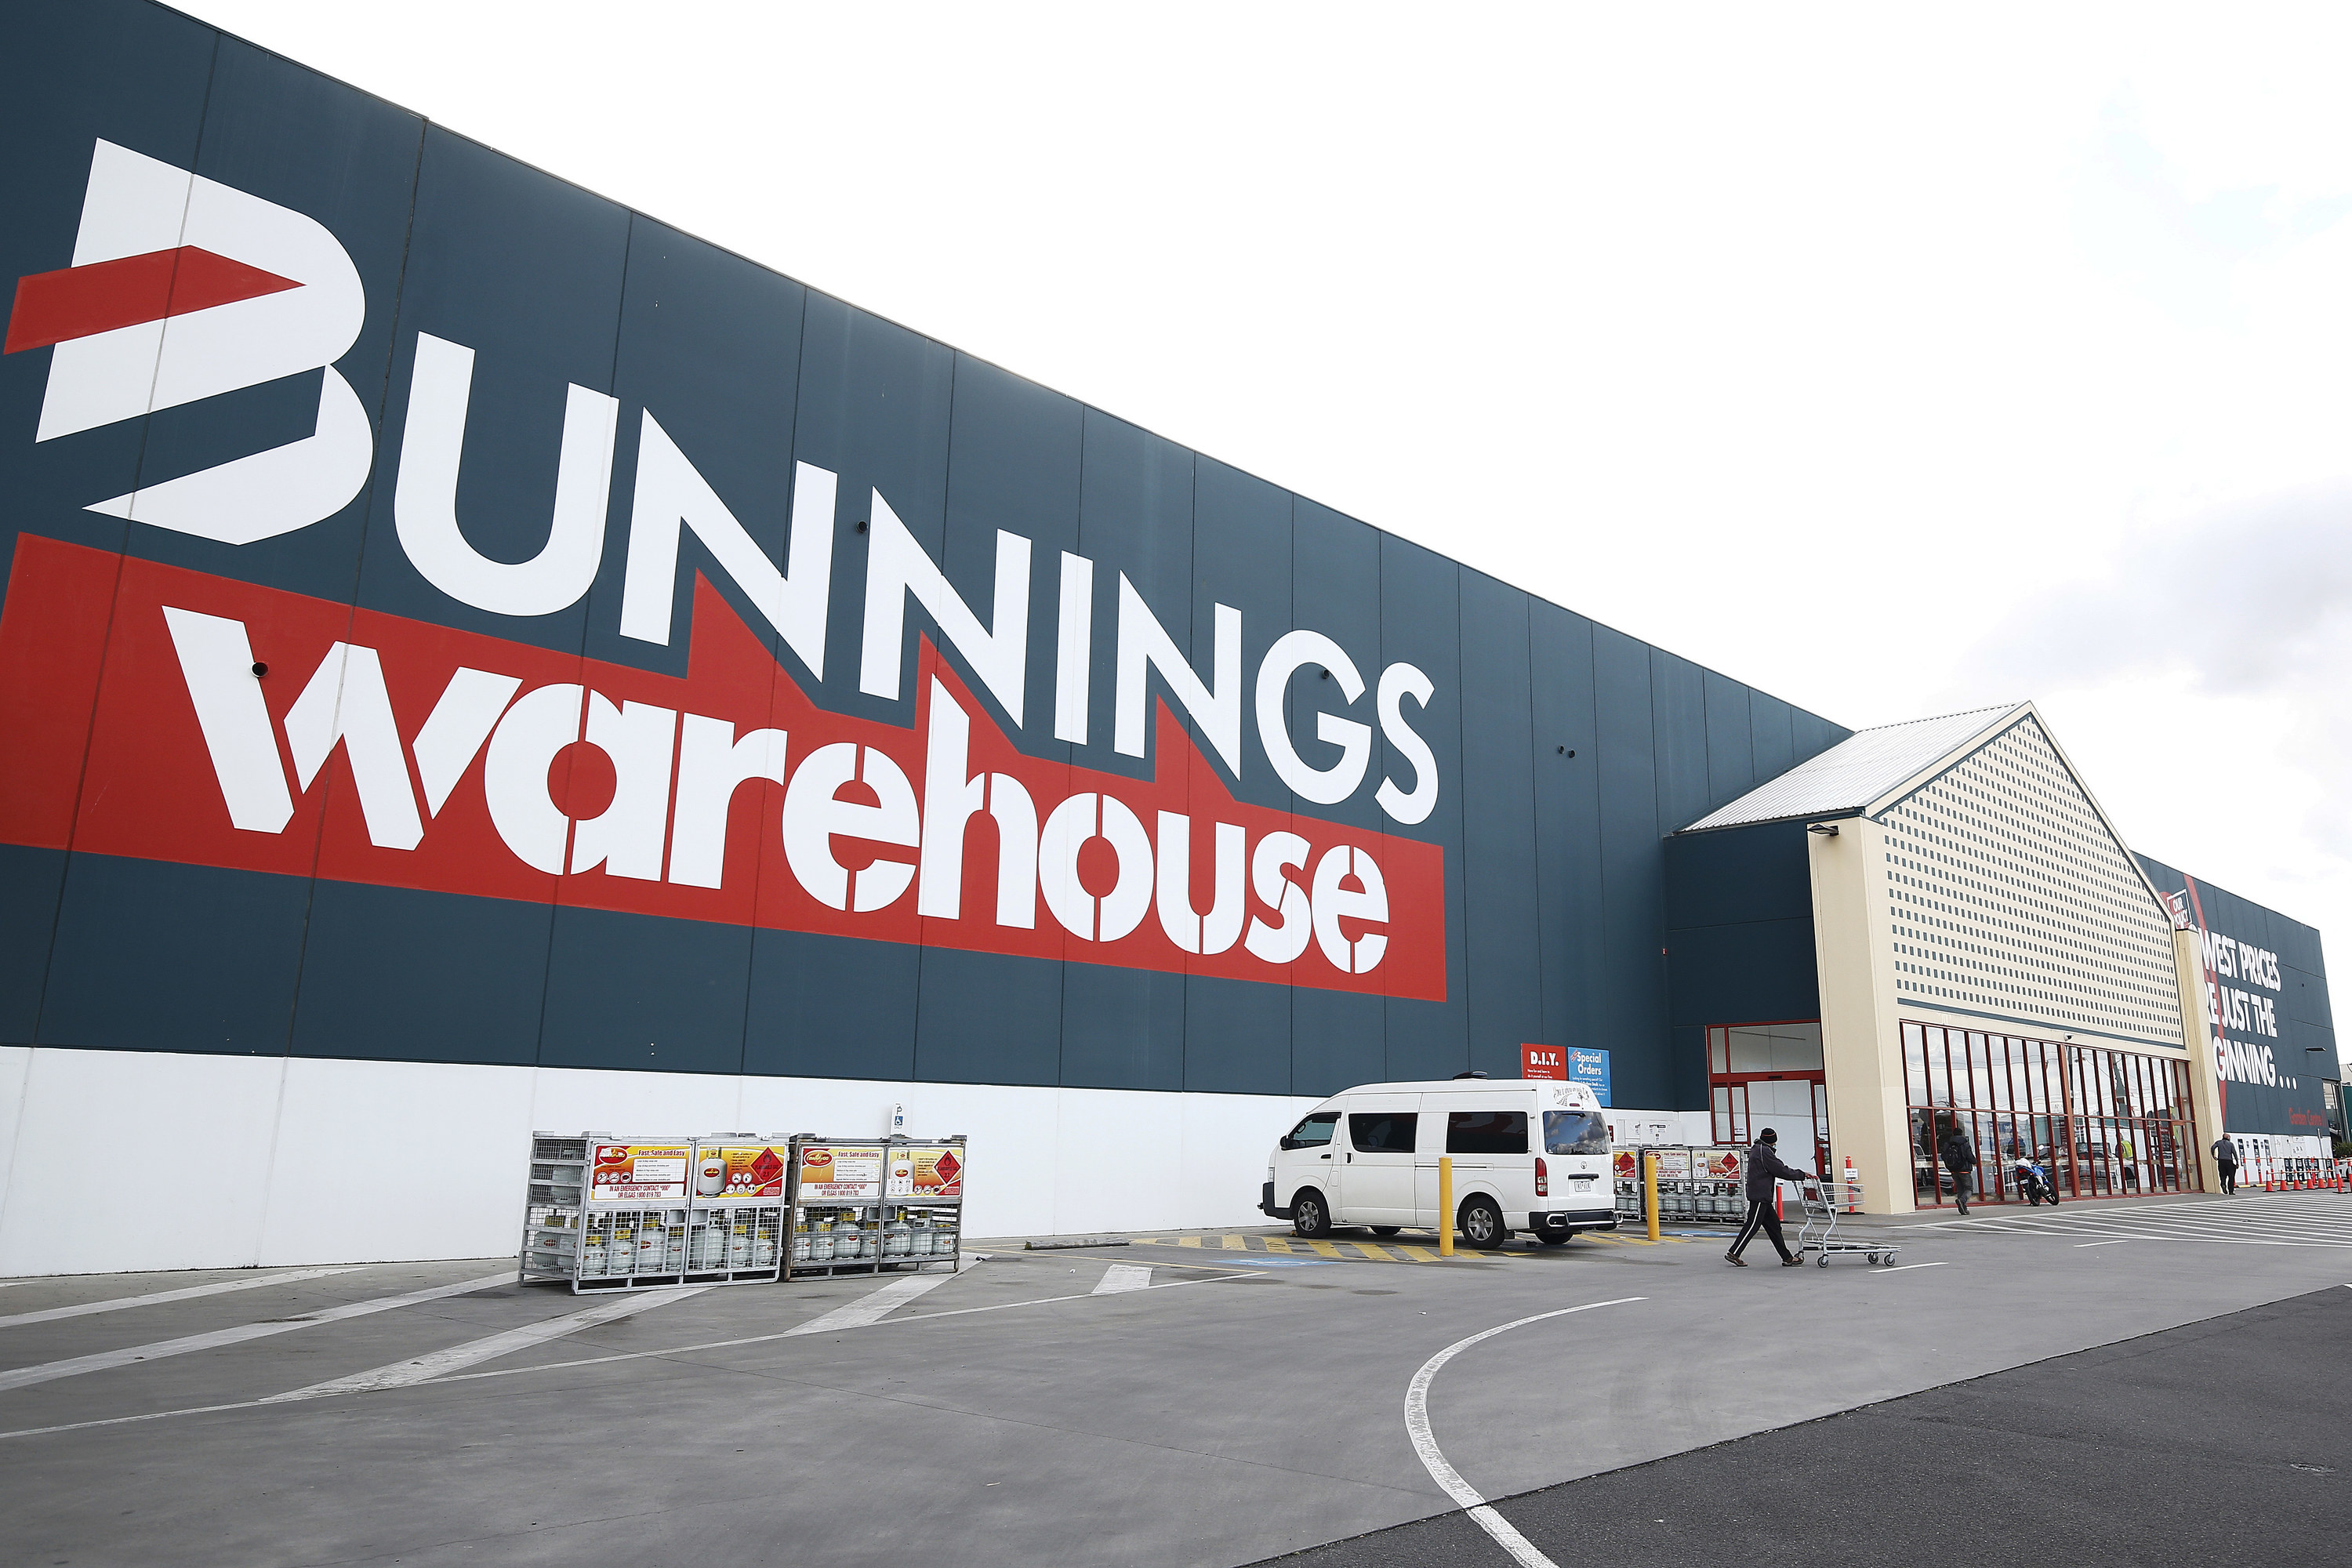 A wide shot of the storefront of a Bunnings Warehouse